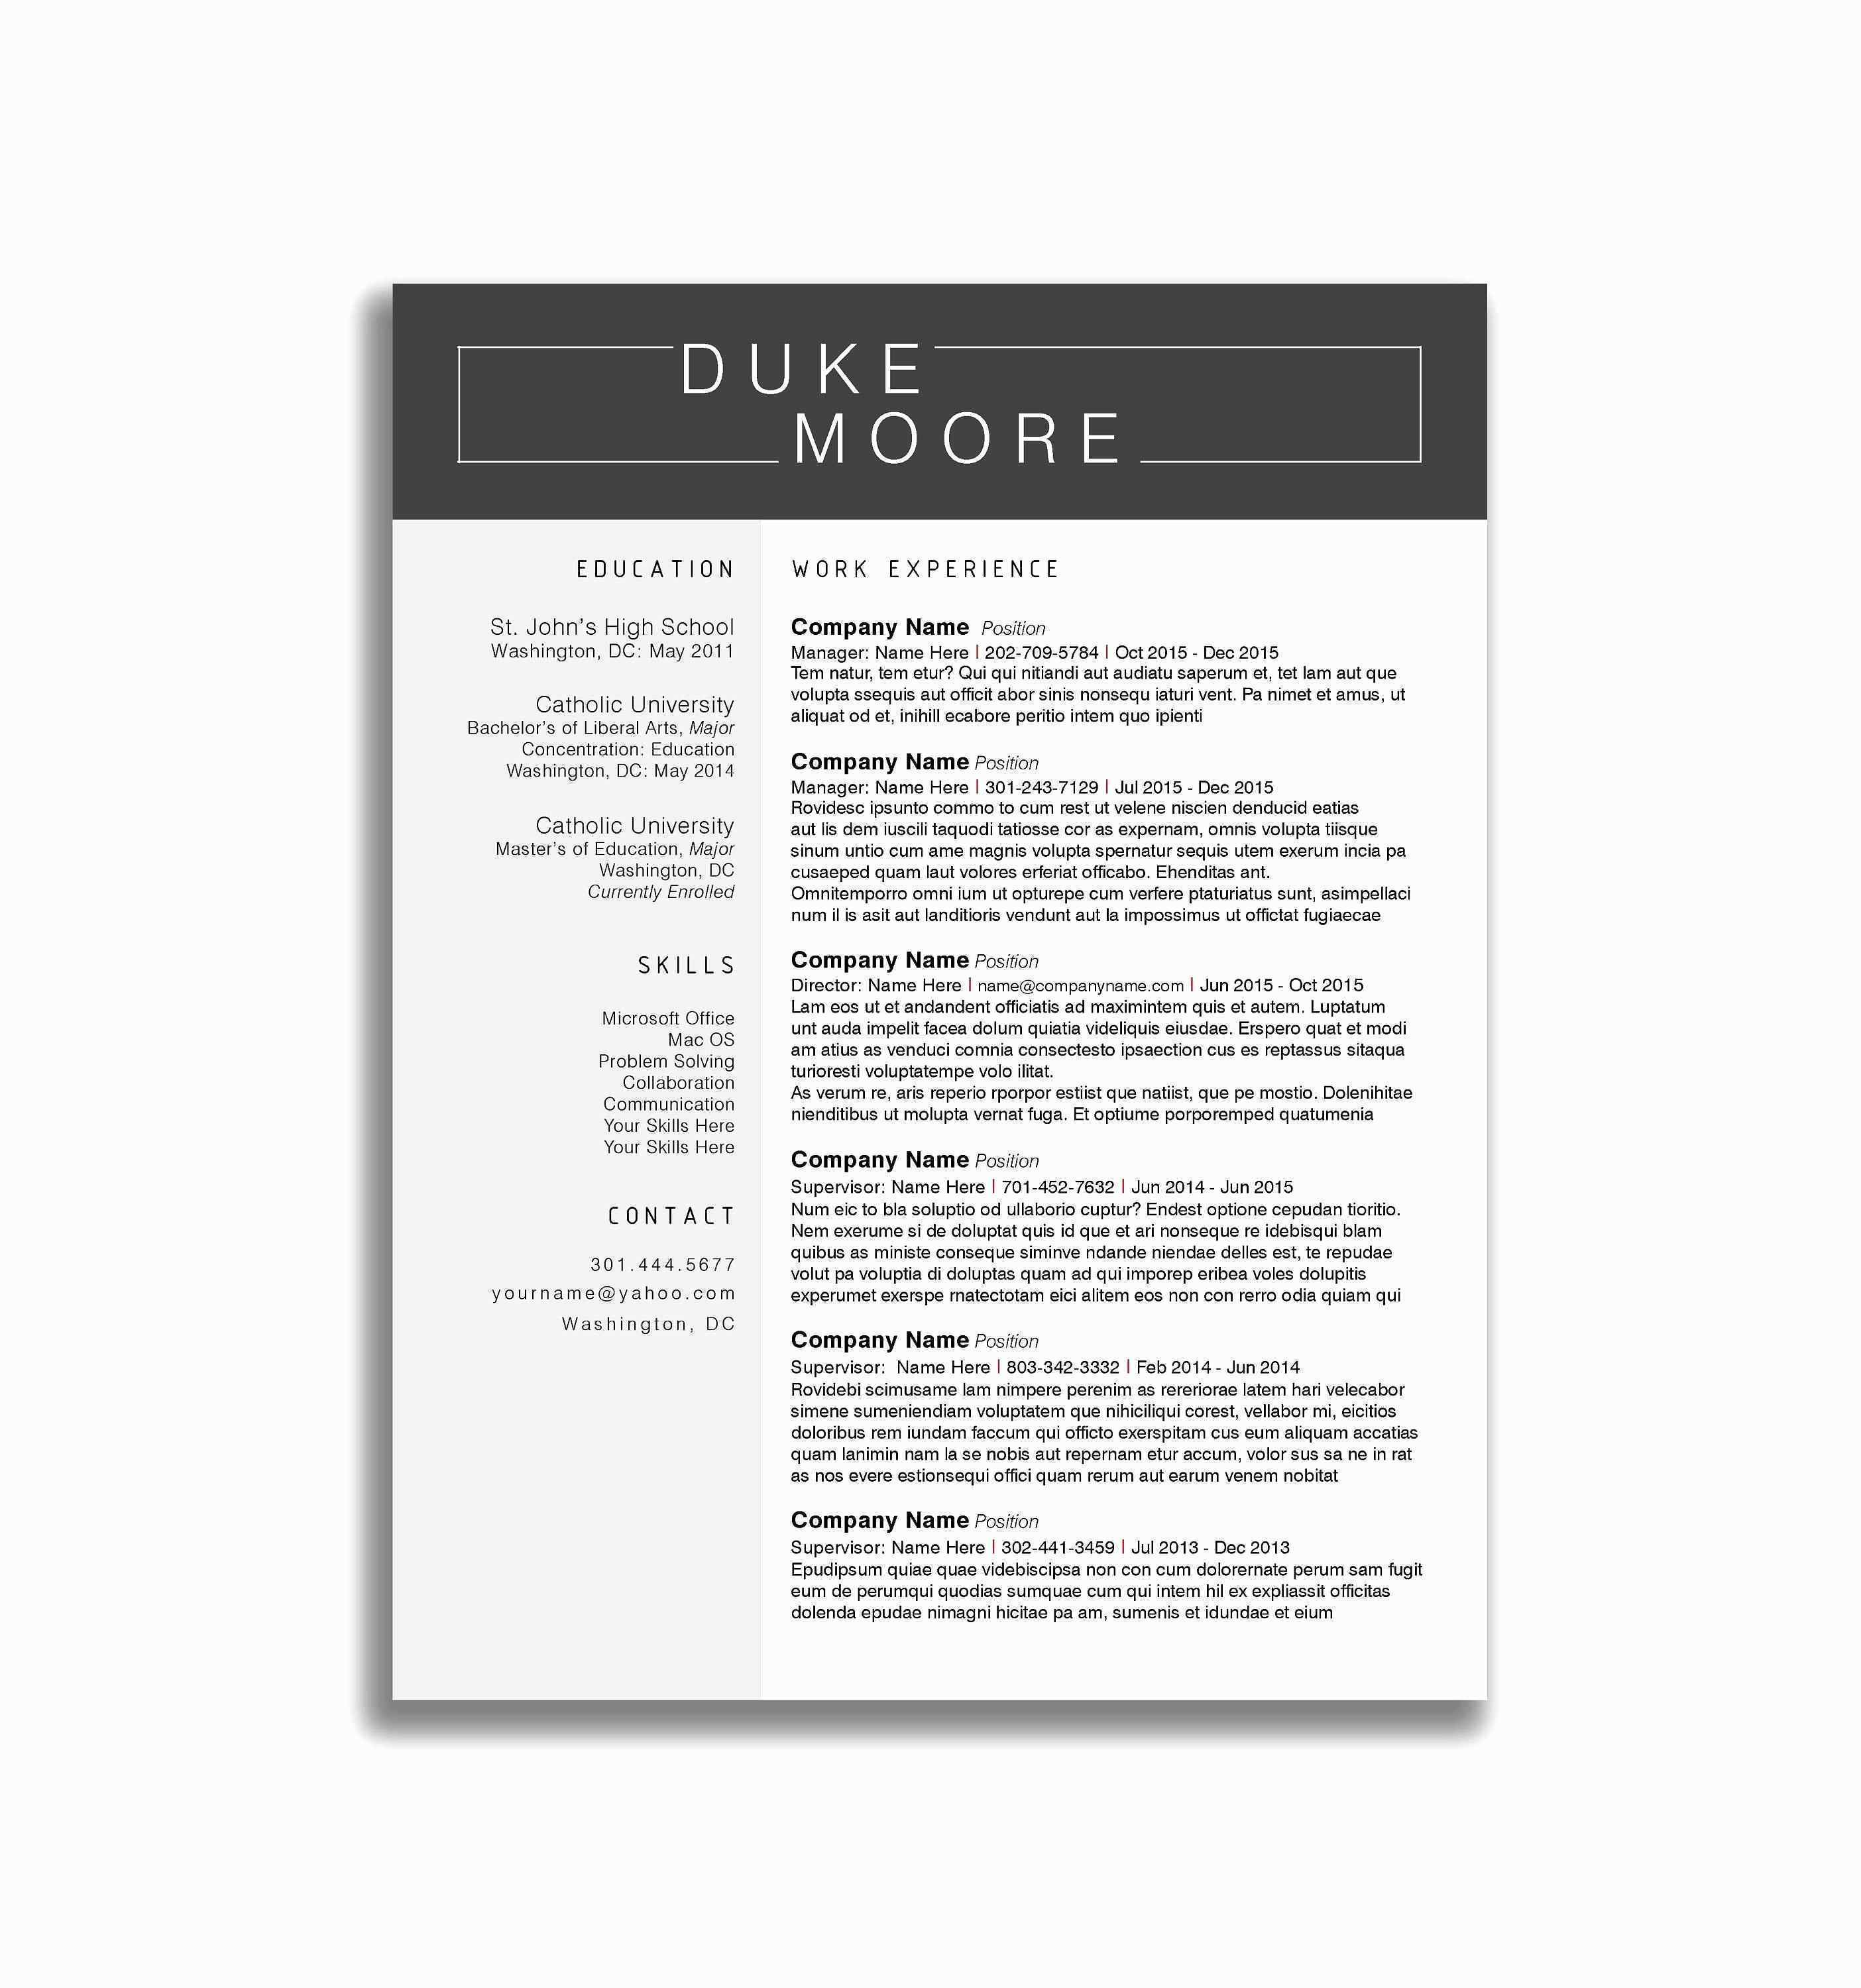 qa lead resume template example-Quality assurance Analyst Cover Letter Elegant 45 Luxury Business Analyst Cover Letter Resume Templates Ideas 10-a